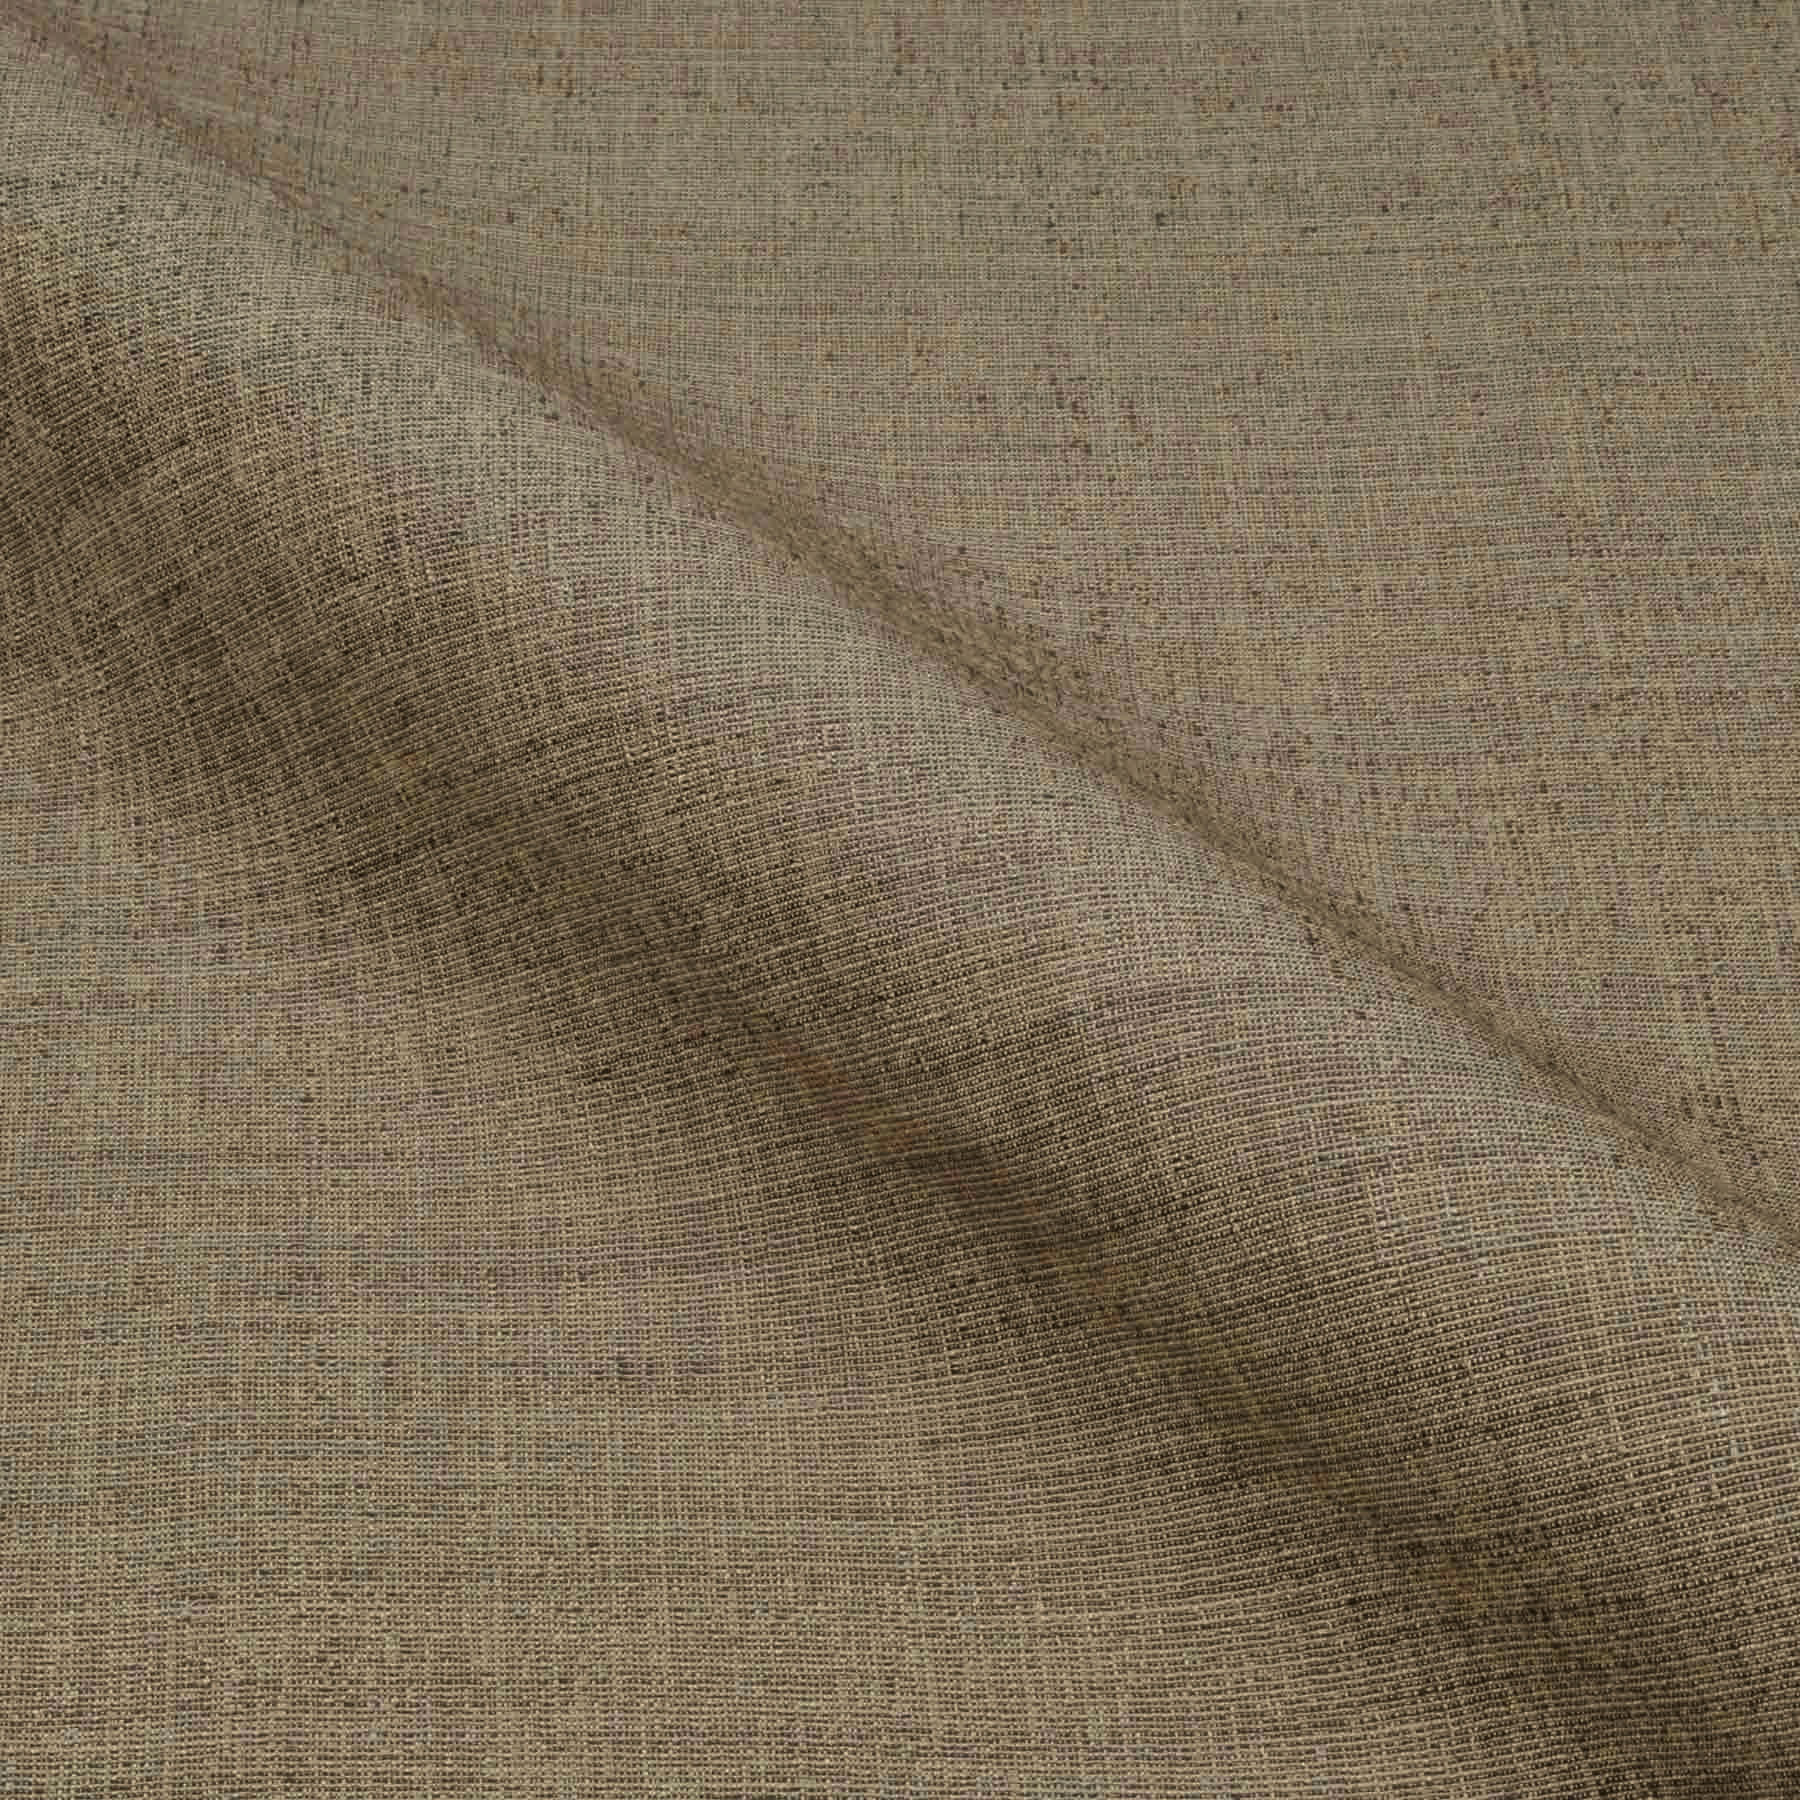 Drapery, Cruise Ship Fabric HOBART In OYSTER By P/Kaufmann